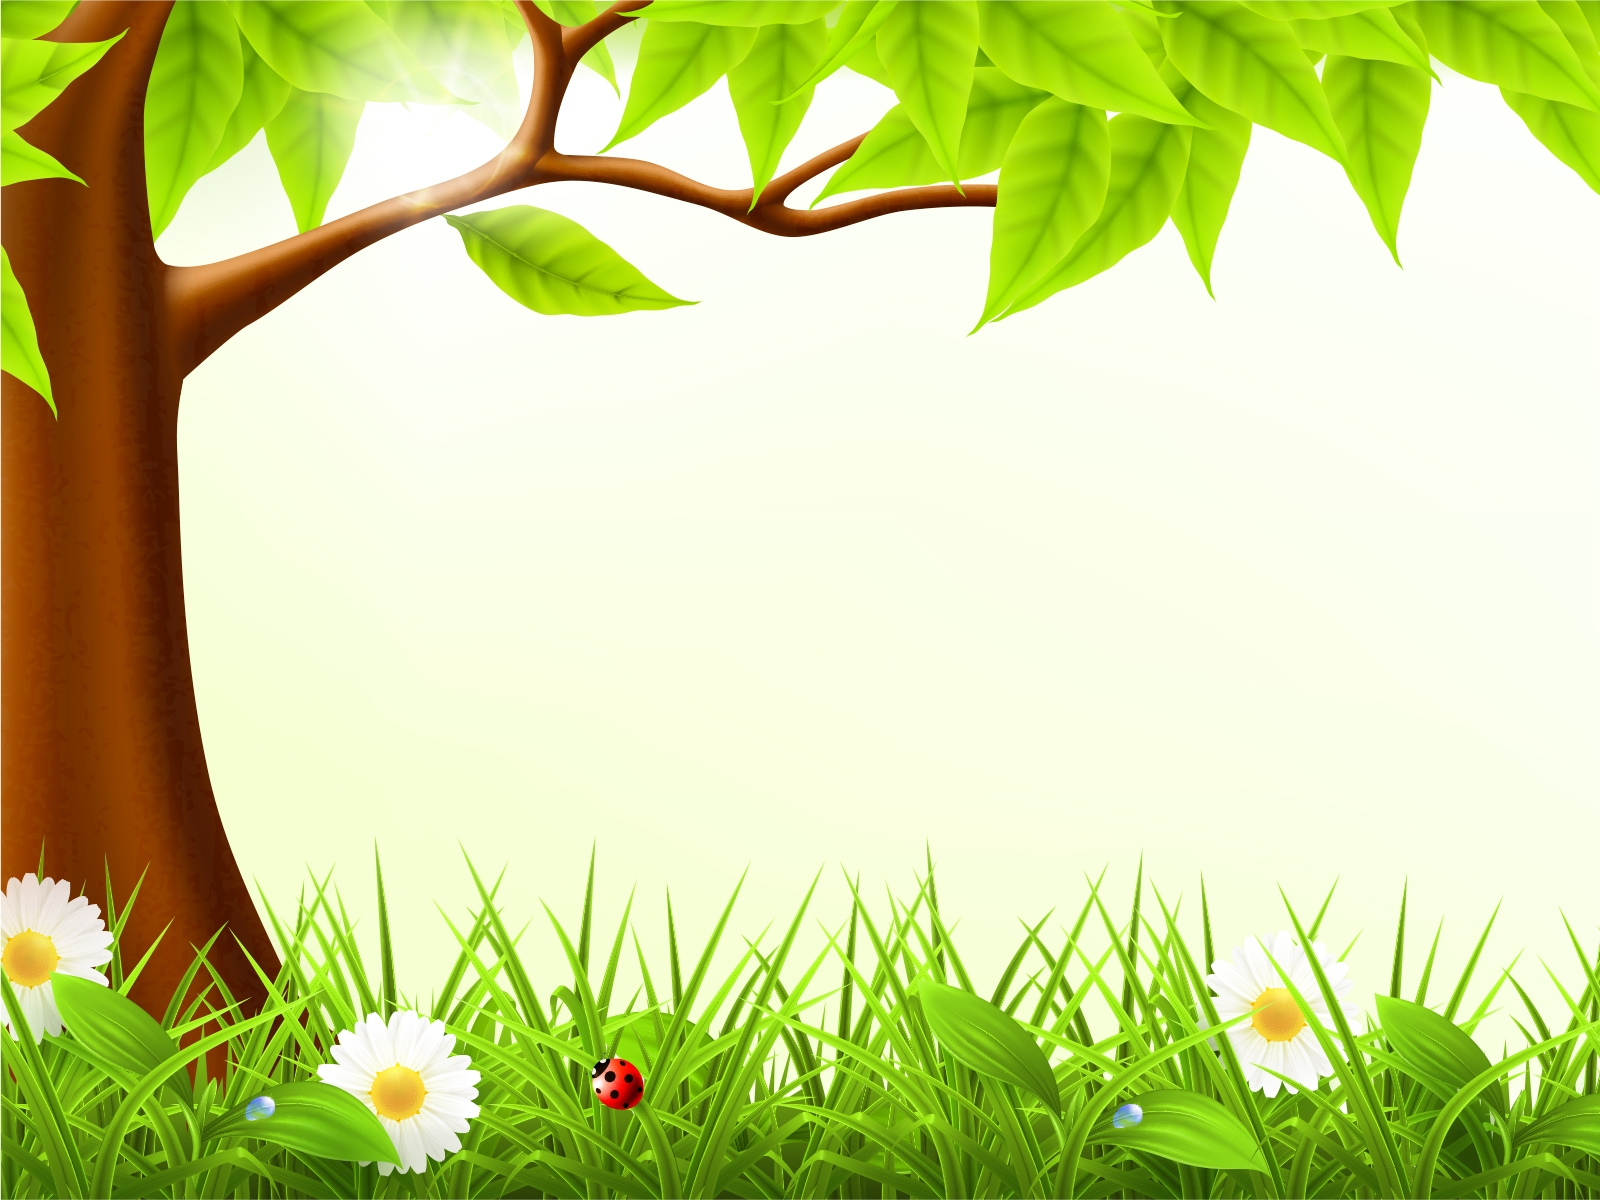 forest background clipart animated